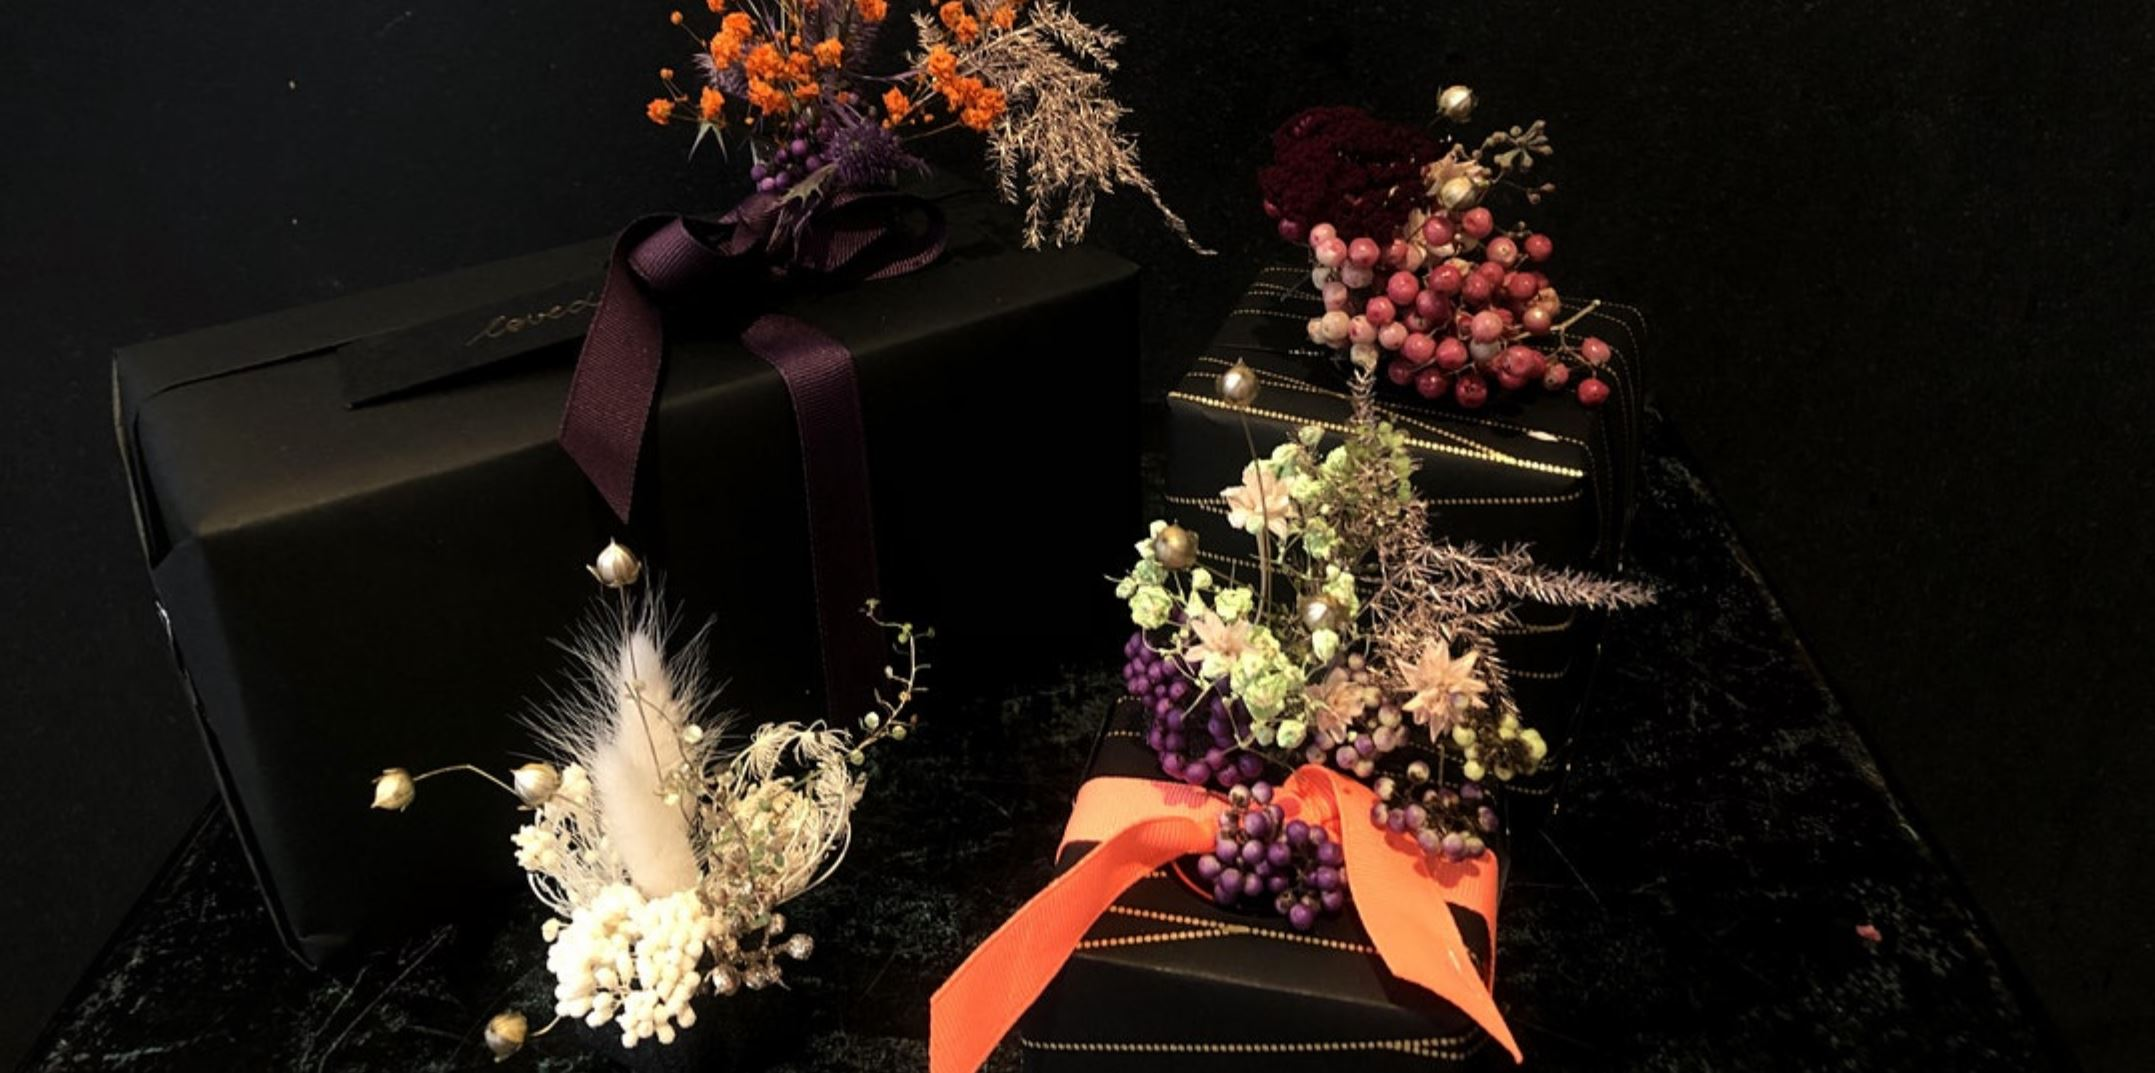 Floral Gift Toppers & Garlands for Christmas @SOIS BLESSED